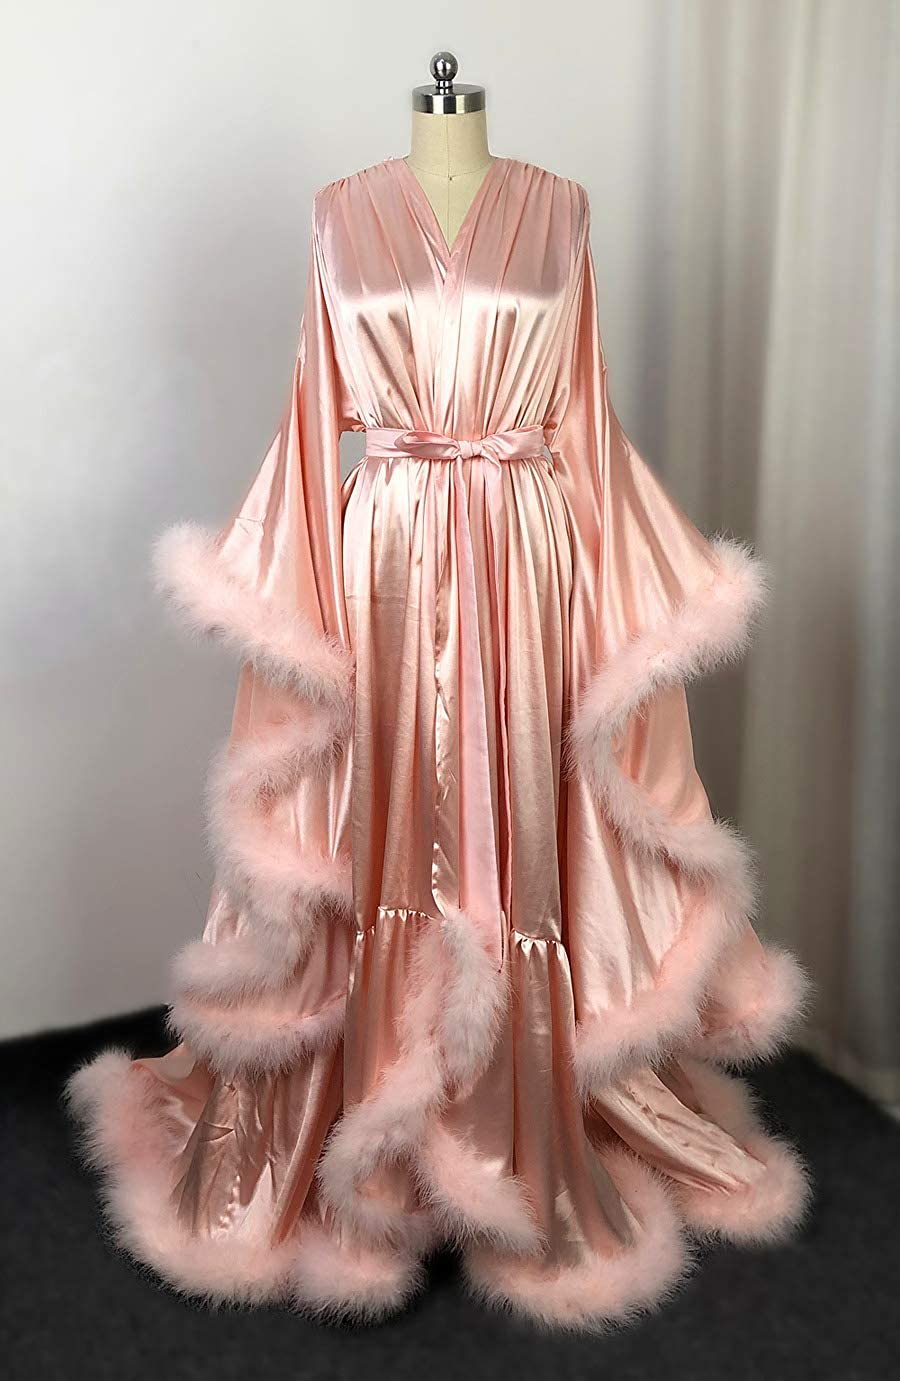 Feather Silk Satin Evening Robe Long V Neck Bathrobe Aline Formal Party Gowns Bridal Robe Satin Long Wedding Dress